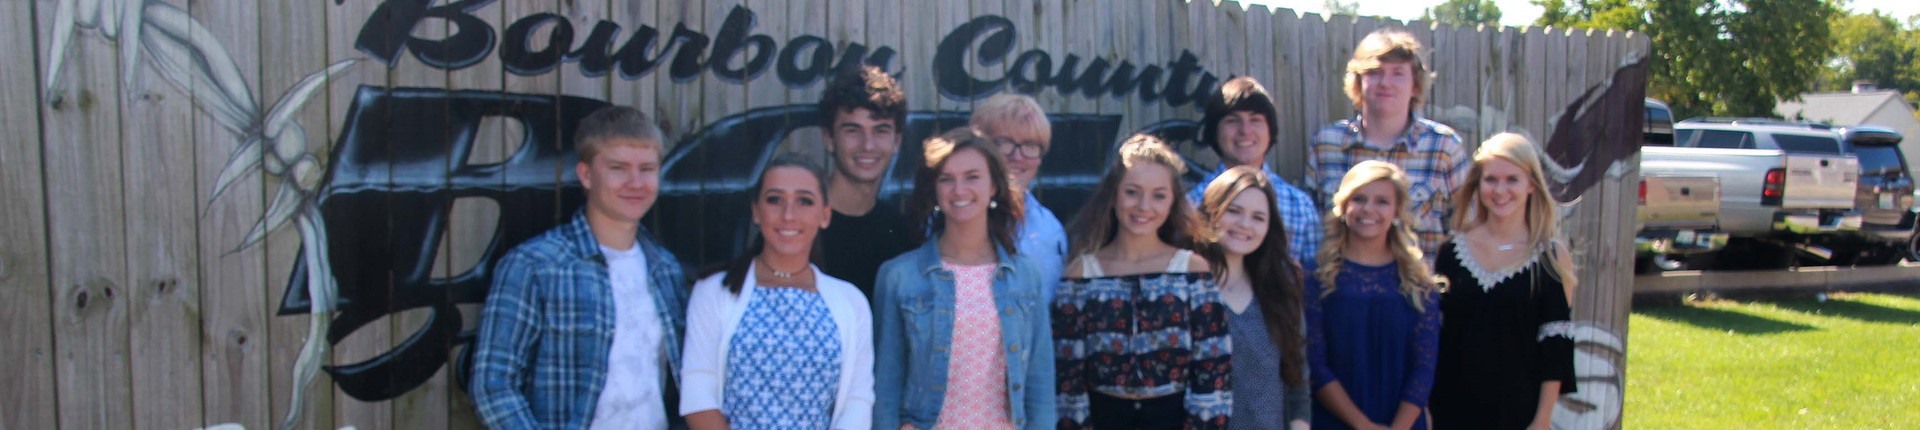 Bourbon County High School Homecoming Court